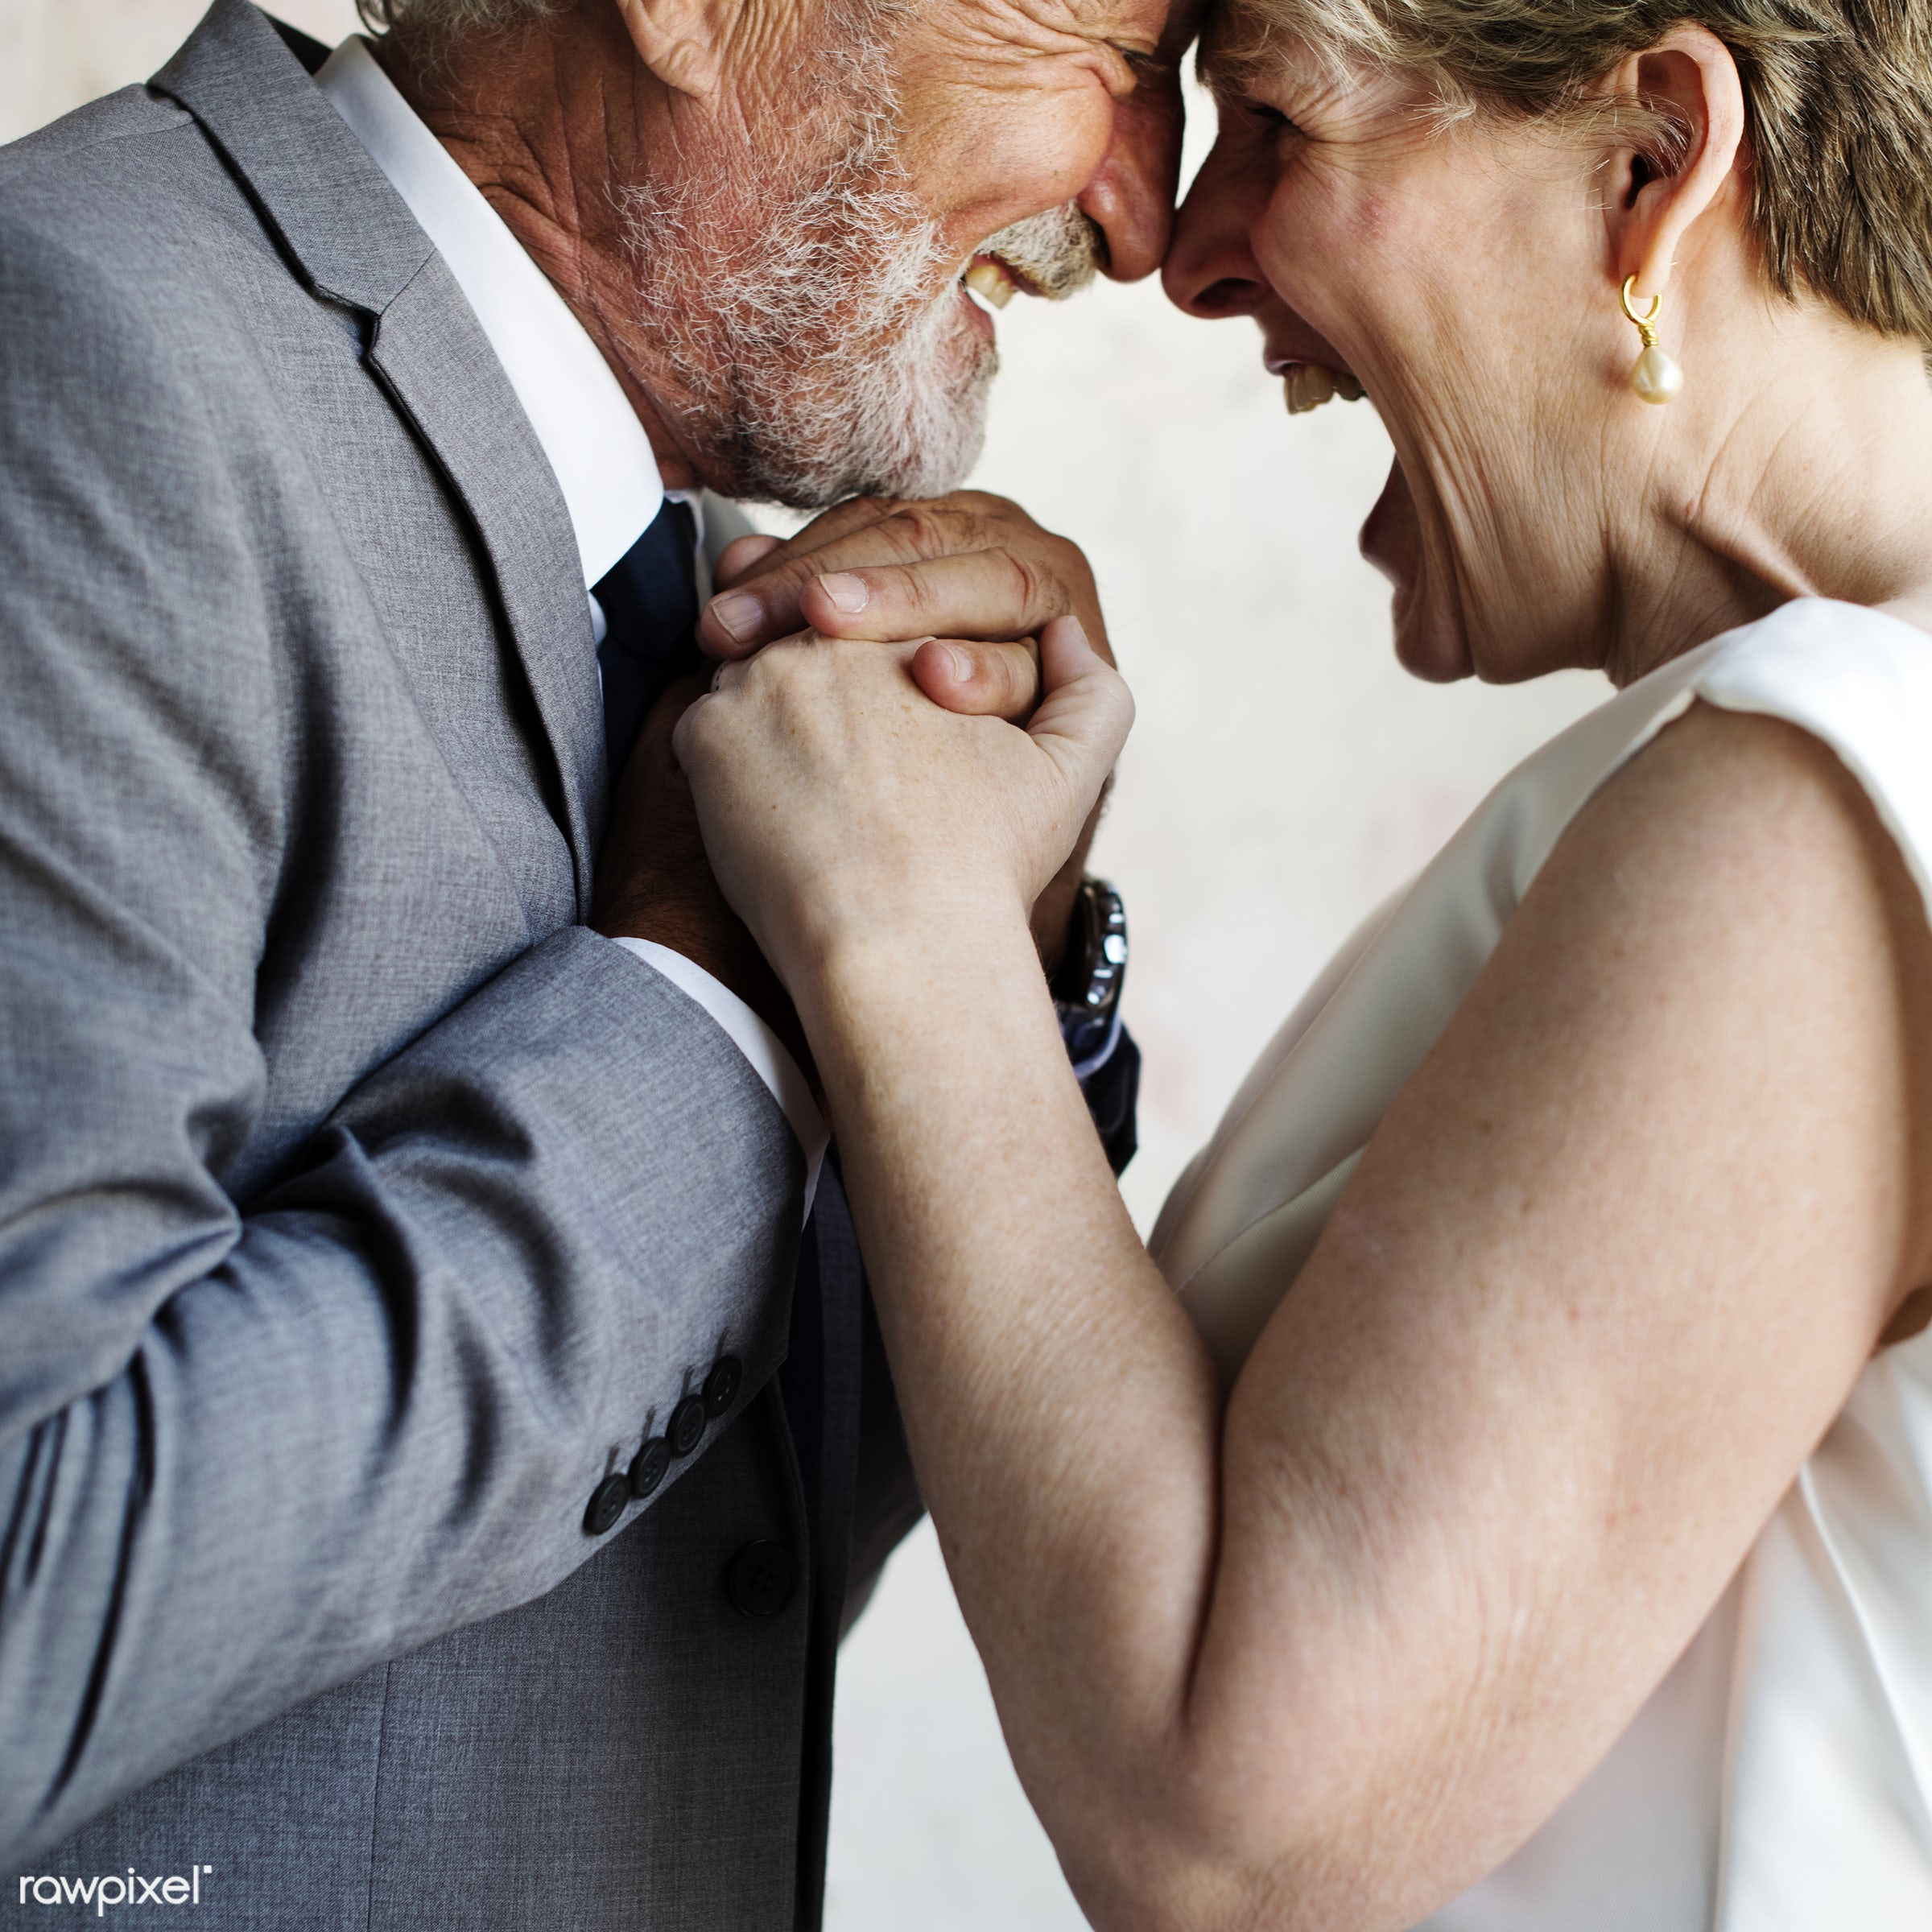 holding, occasion, husband, people, caucasian, love, married, hands, gala, spouse, cheerful, senior couple, closeup, fiance...